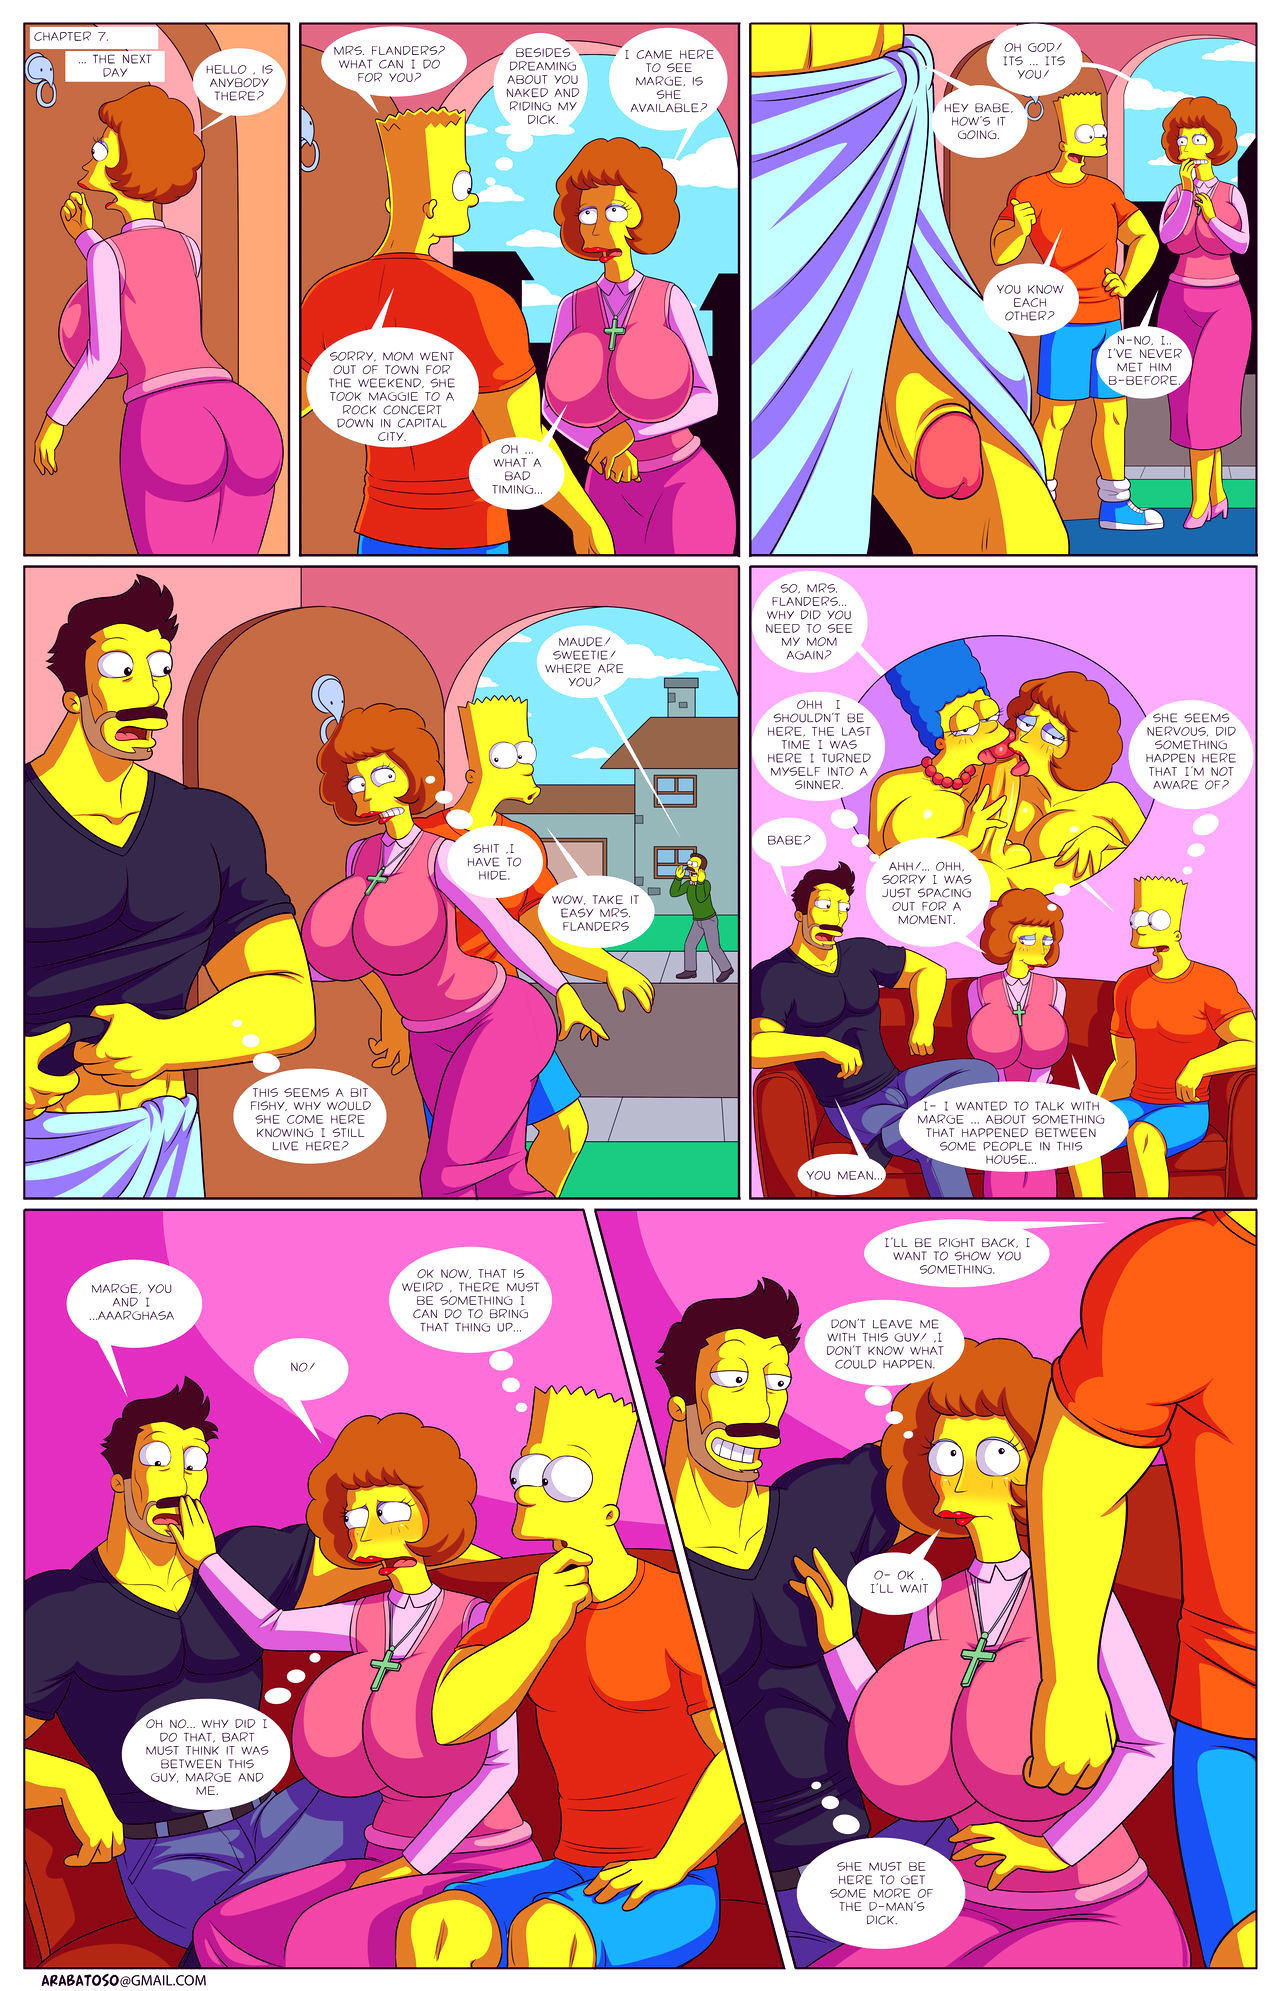 Darrens adventure or welcome to springfield porn comic picture 34